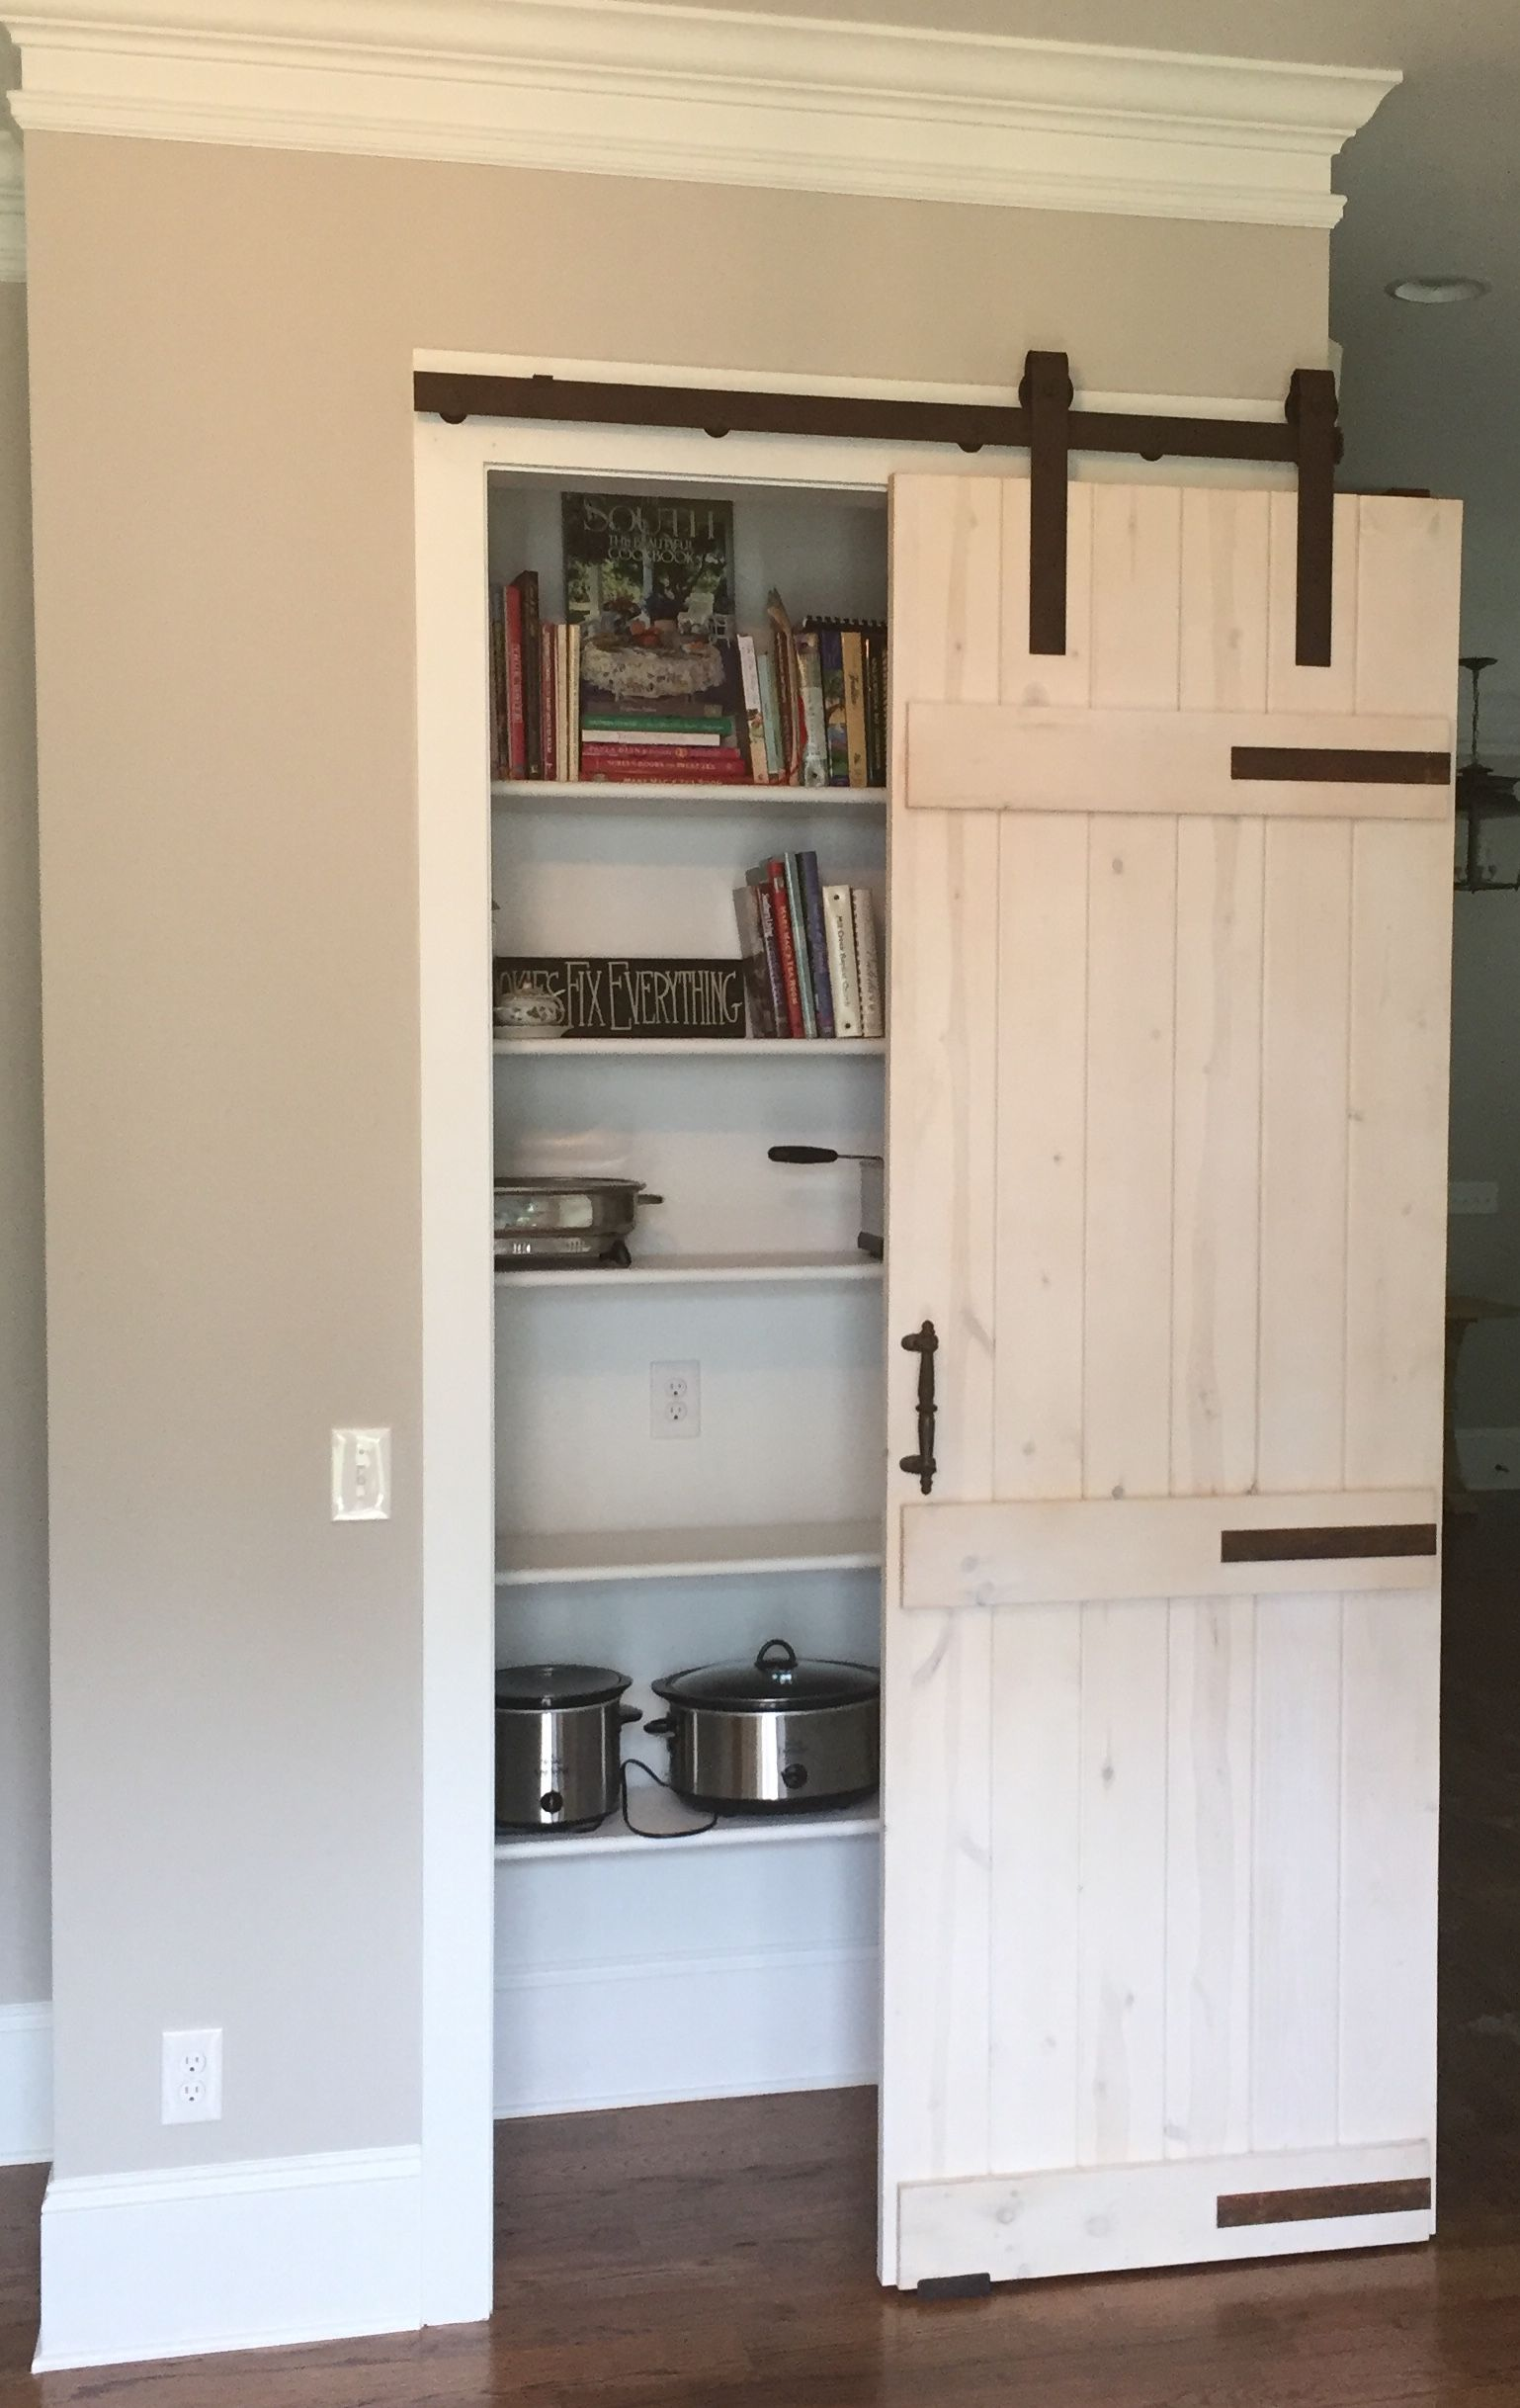 awesome improvement best for modern home elegant of pics red direct concept door barns the pole design barn pantry open windows gallery and pic doors photos